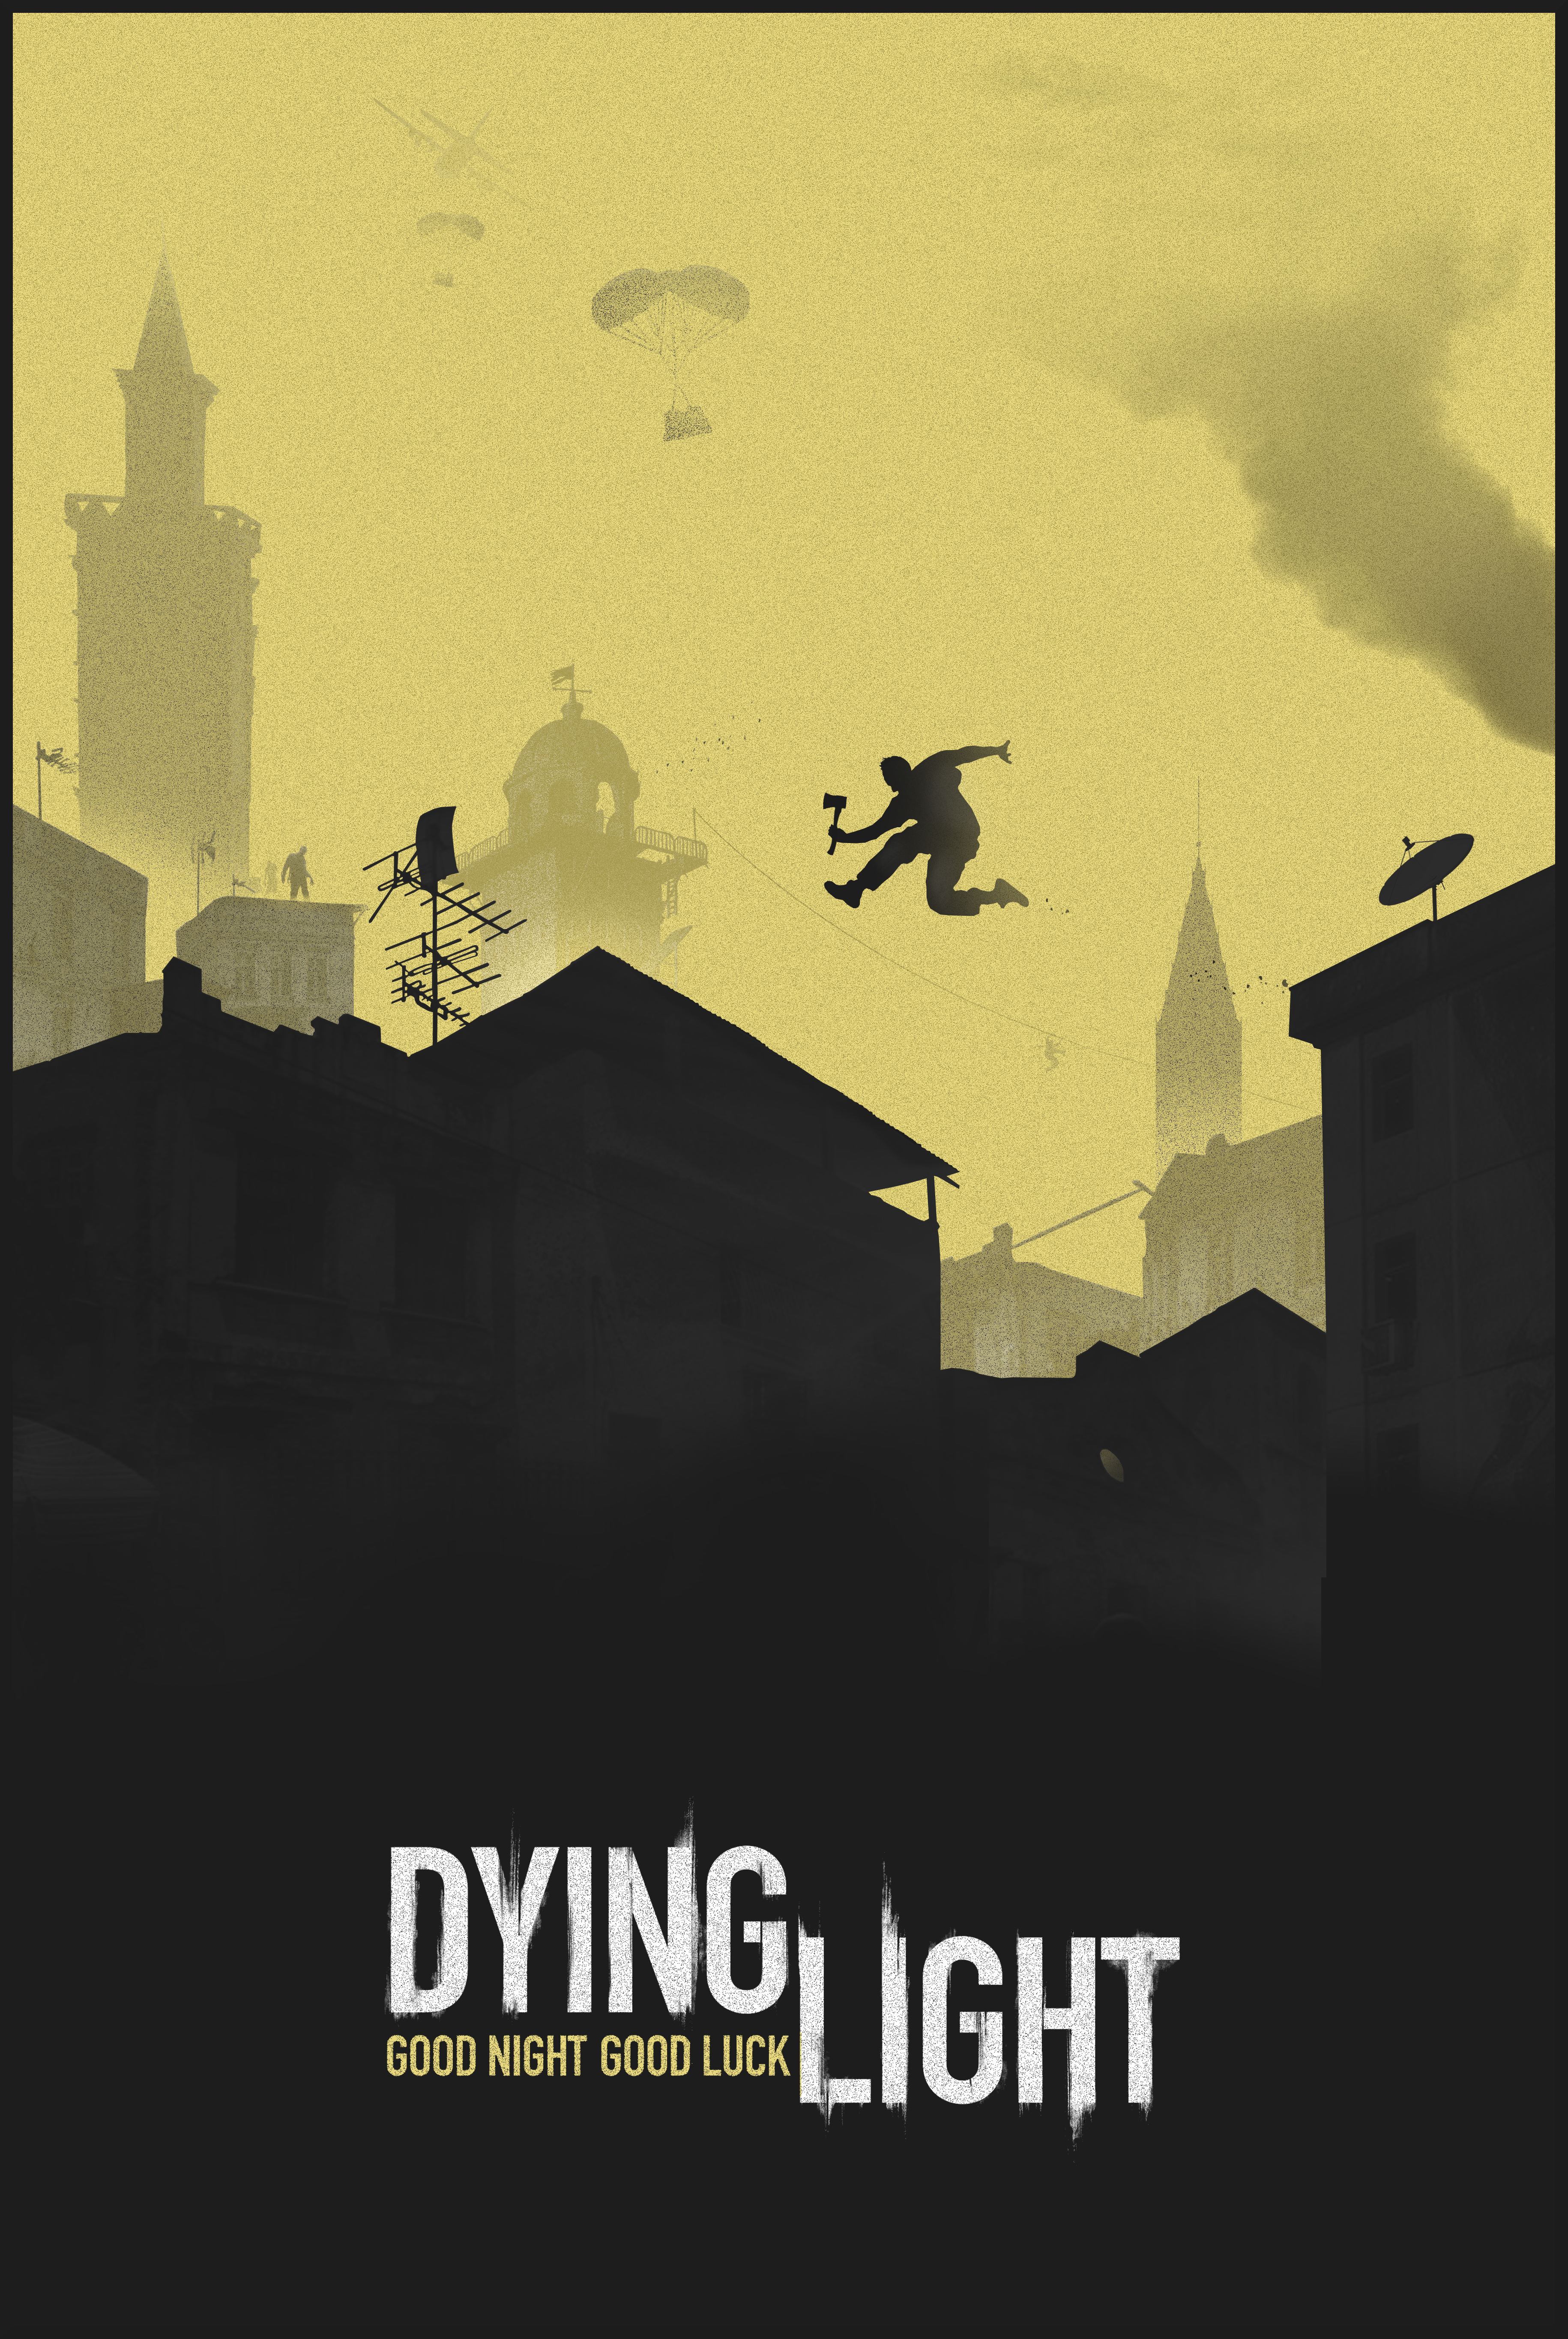 Posterspy Wp Content Uploads 2014 12 DyingLight